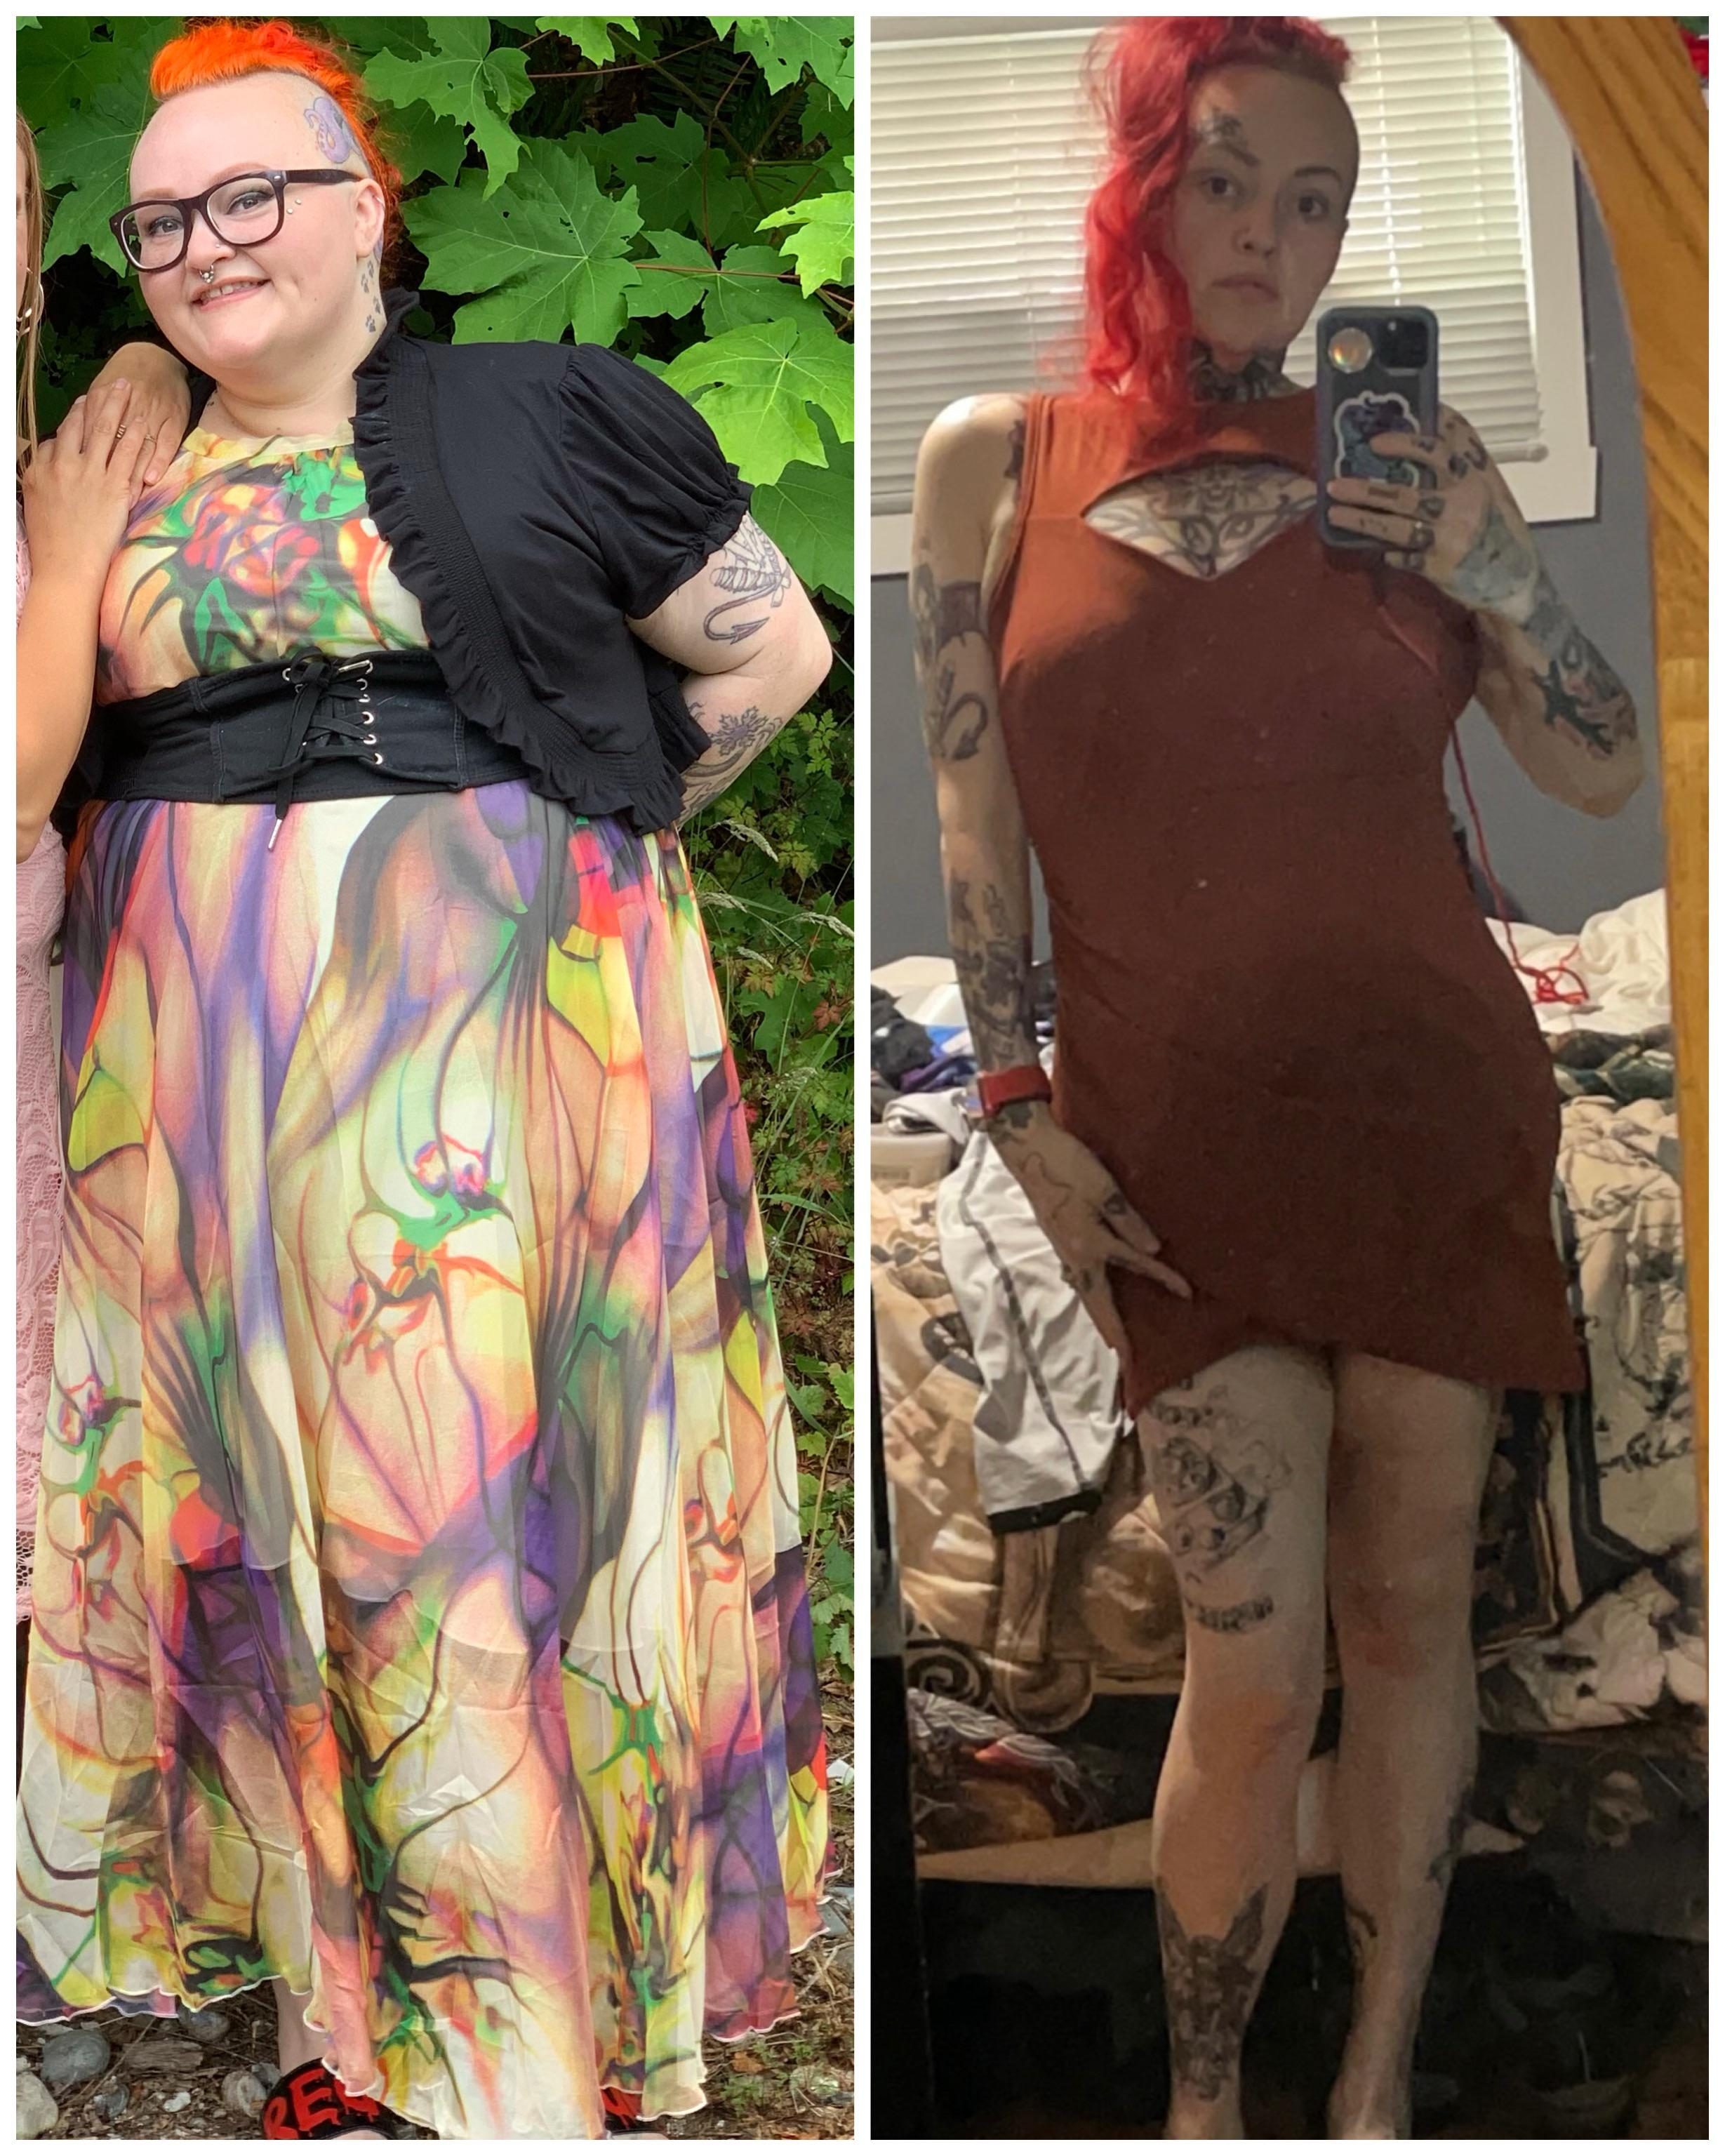 156 lbs Weight Loss Before and After 5'5 Female 312 lbs to 156 lbs